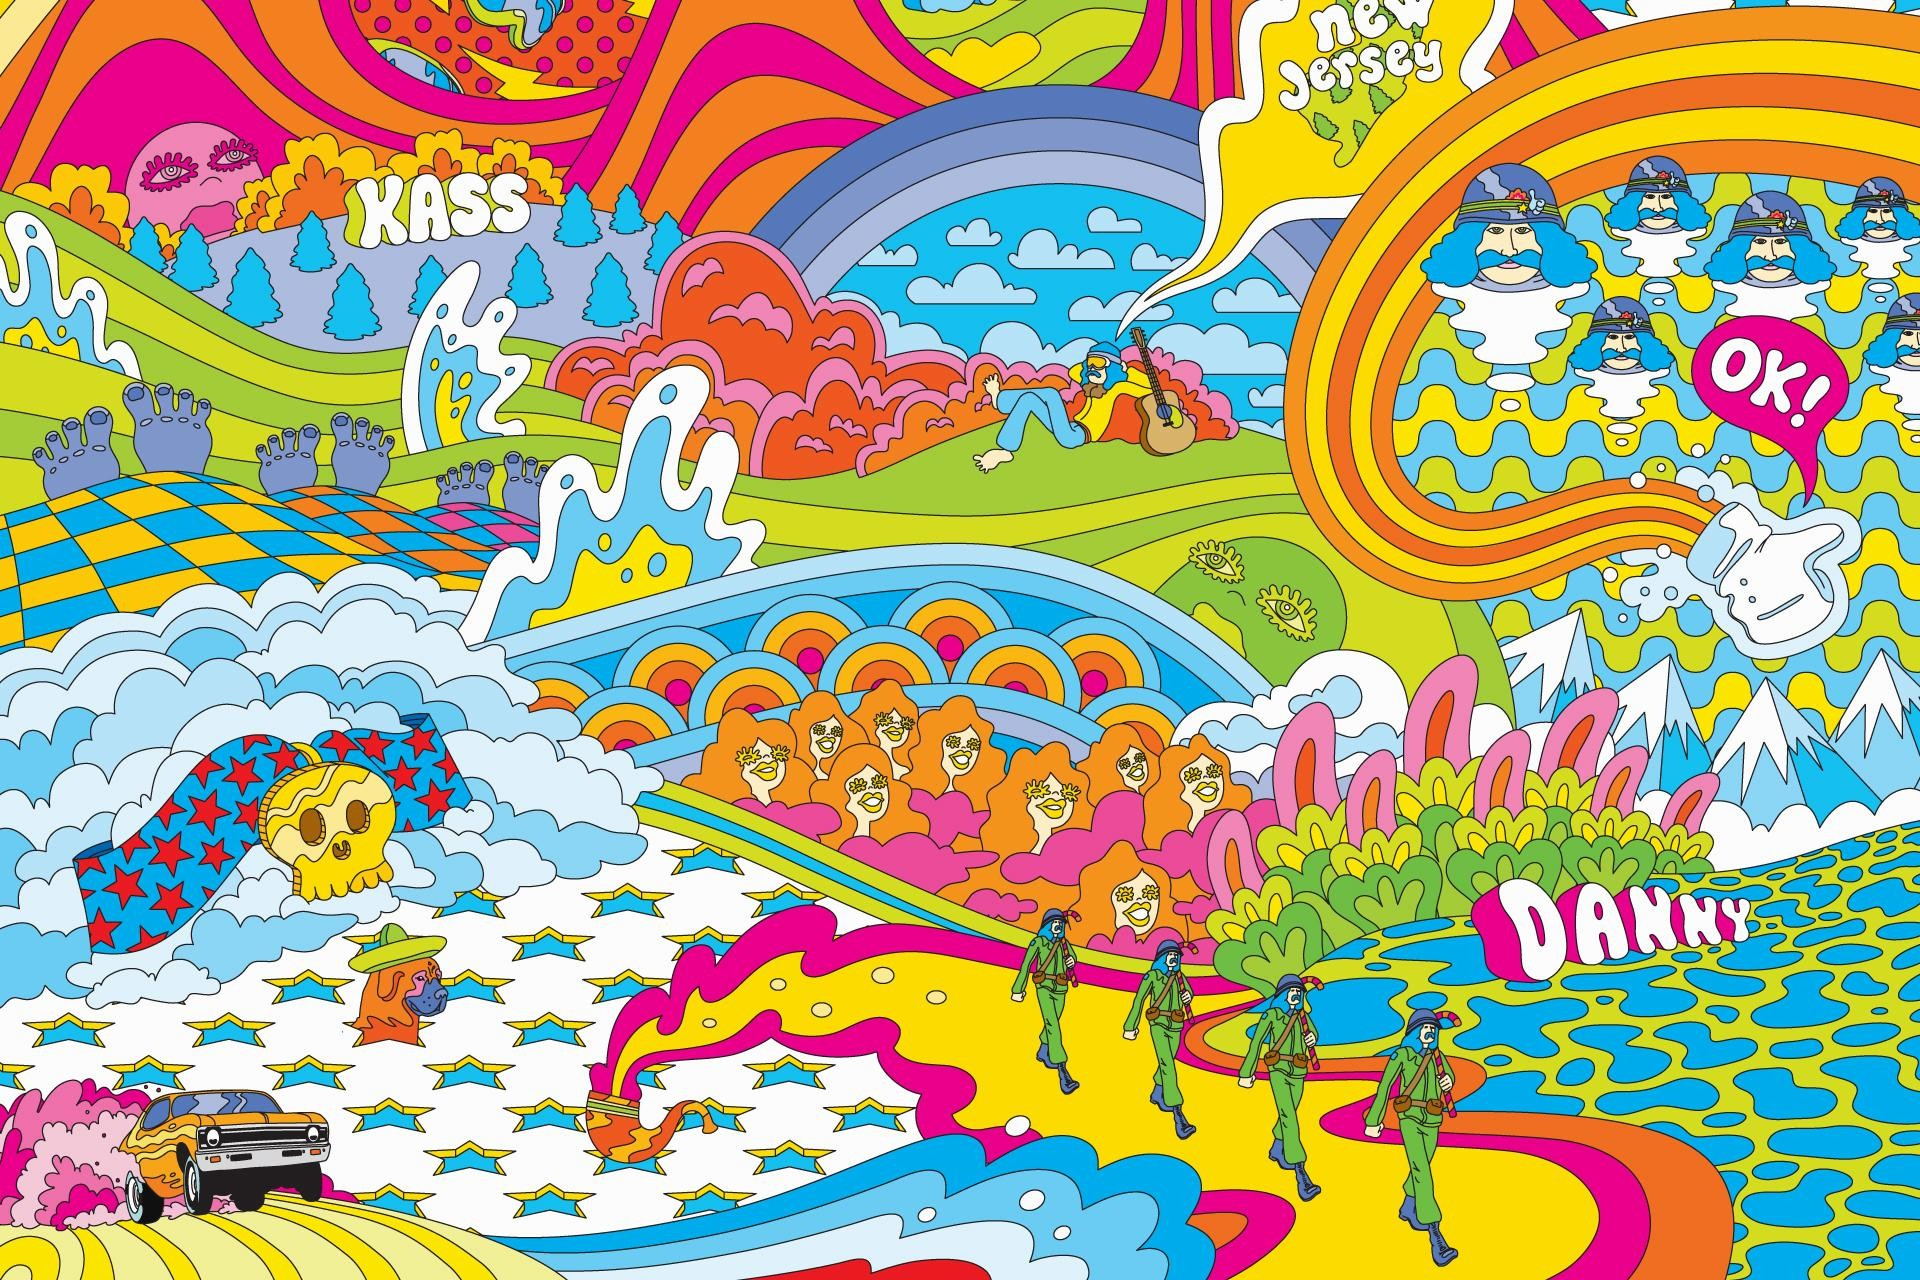 Artistic-Psychedelic-Hippie-Hippies-Colors-Colorful-Trippy-wallpaper-